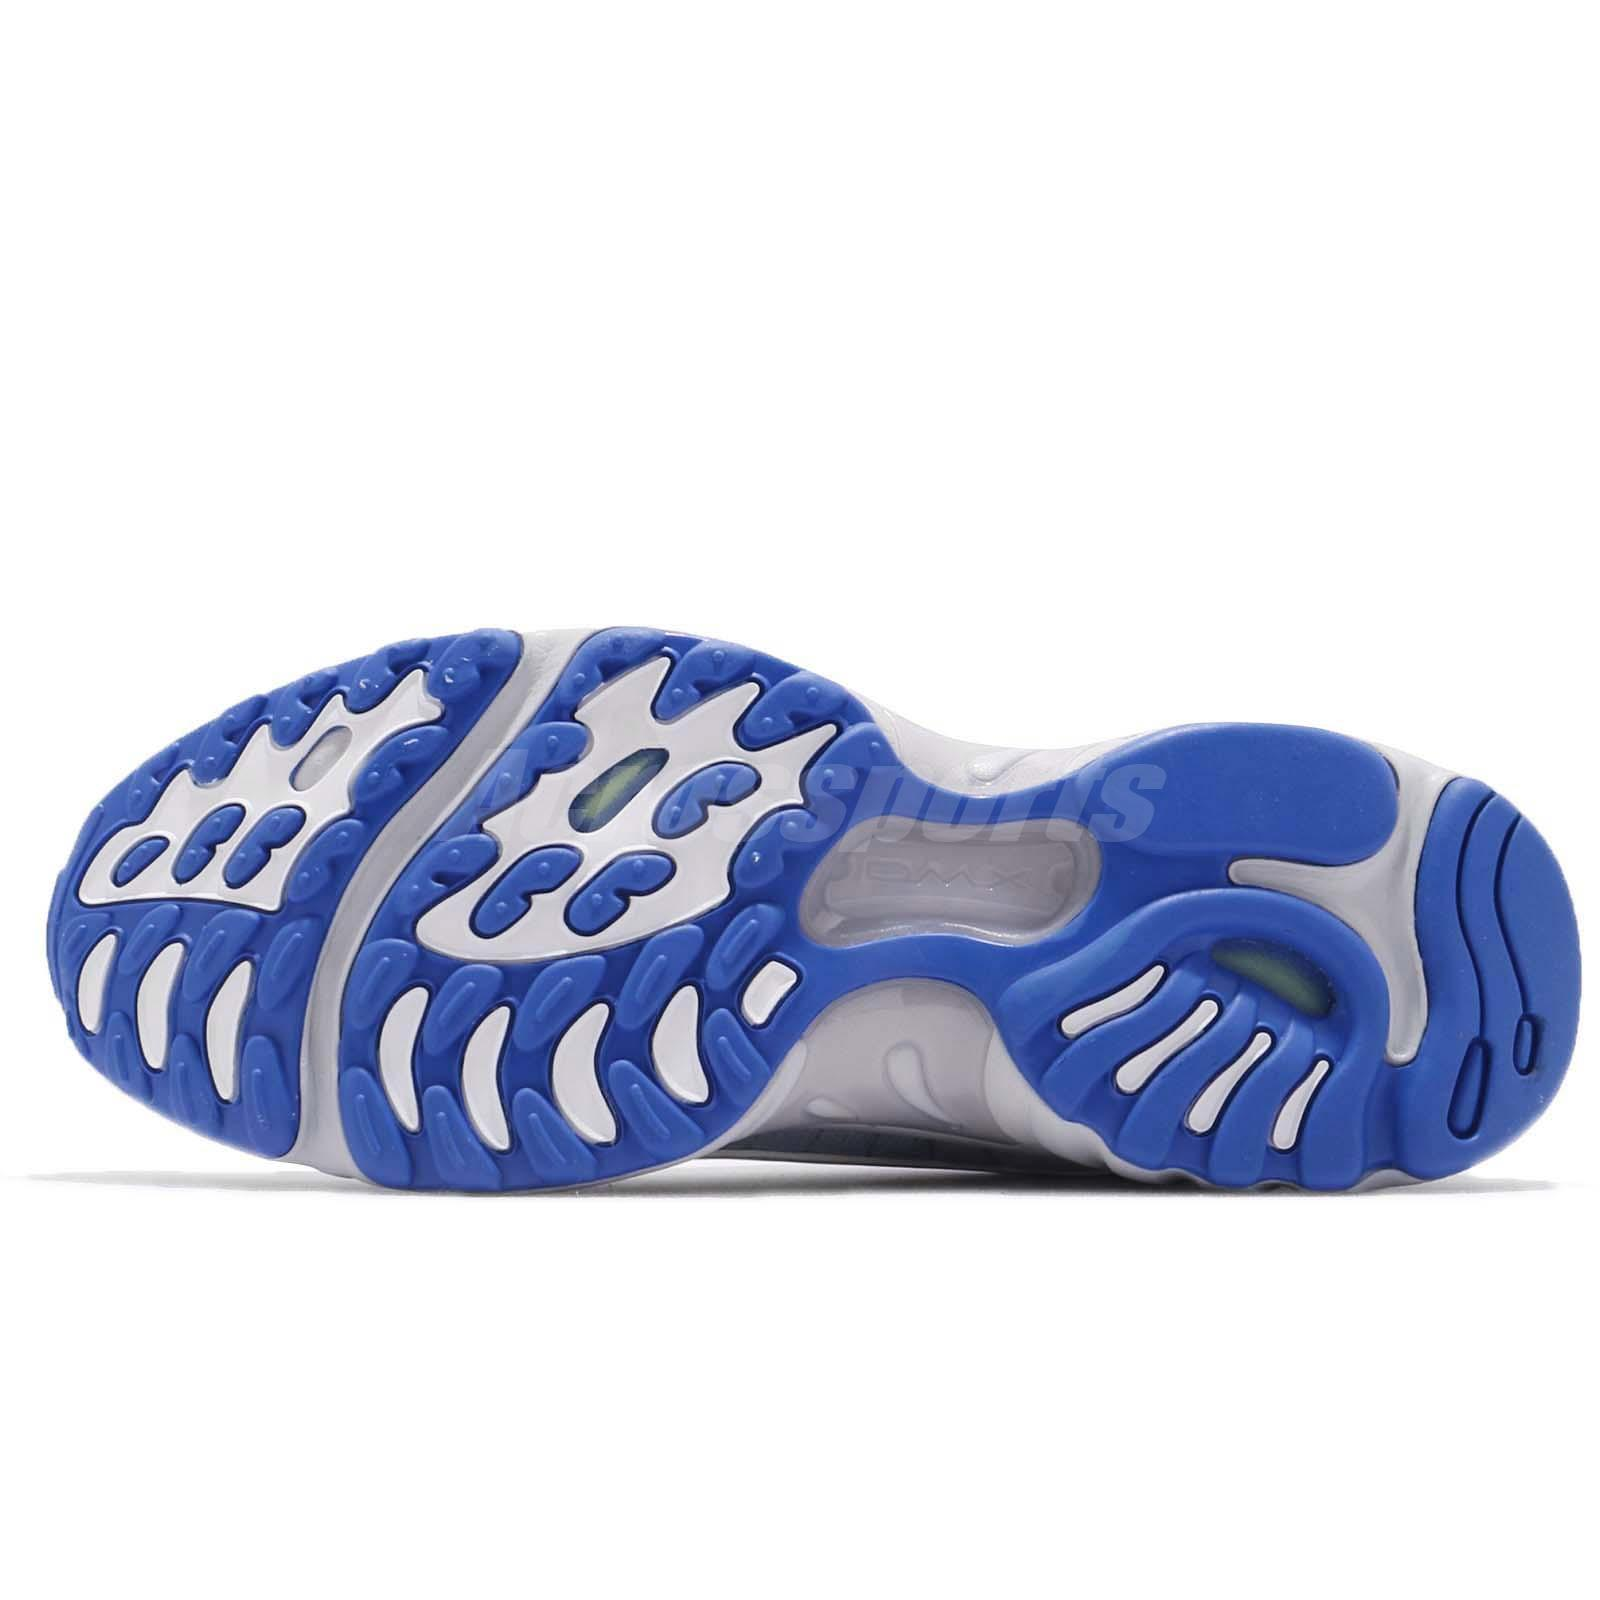 f3059a898b5 Reebok Daytona DMX Blue White Grey Lemon Men Running Daddy Shoes ...